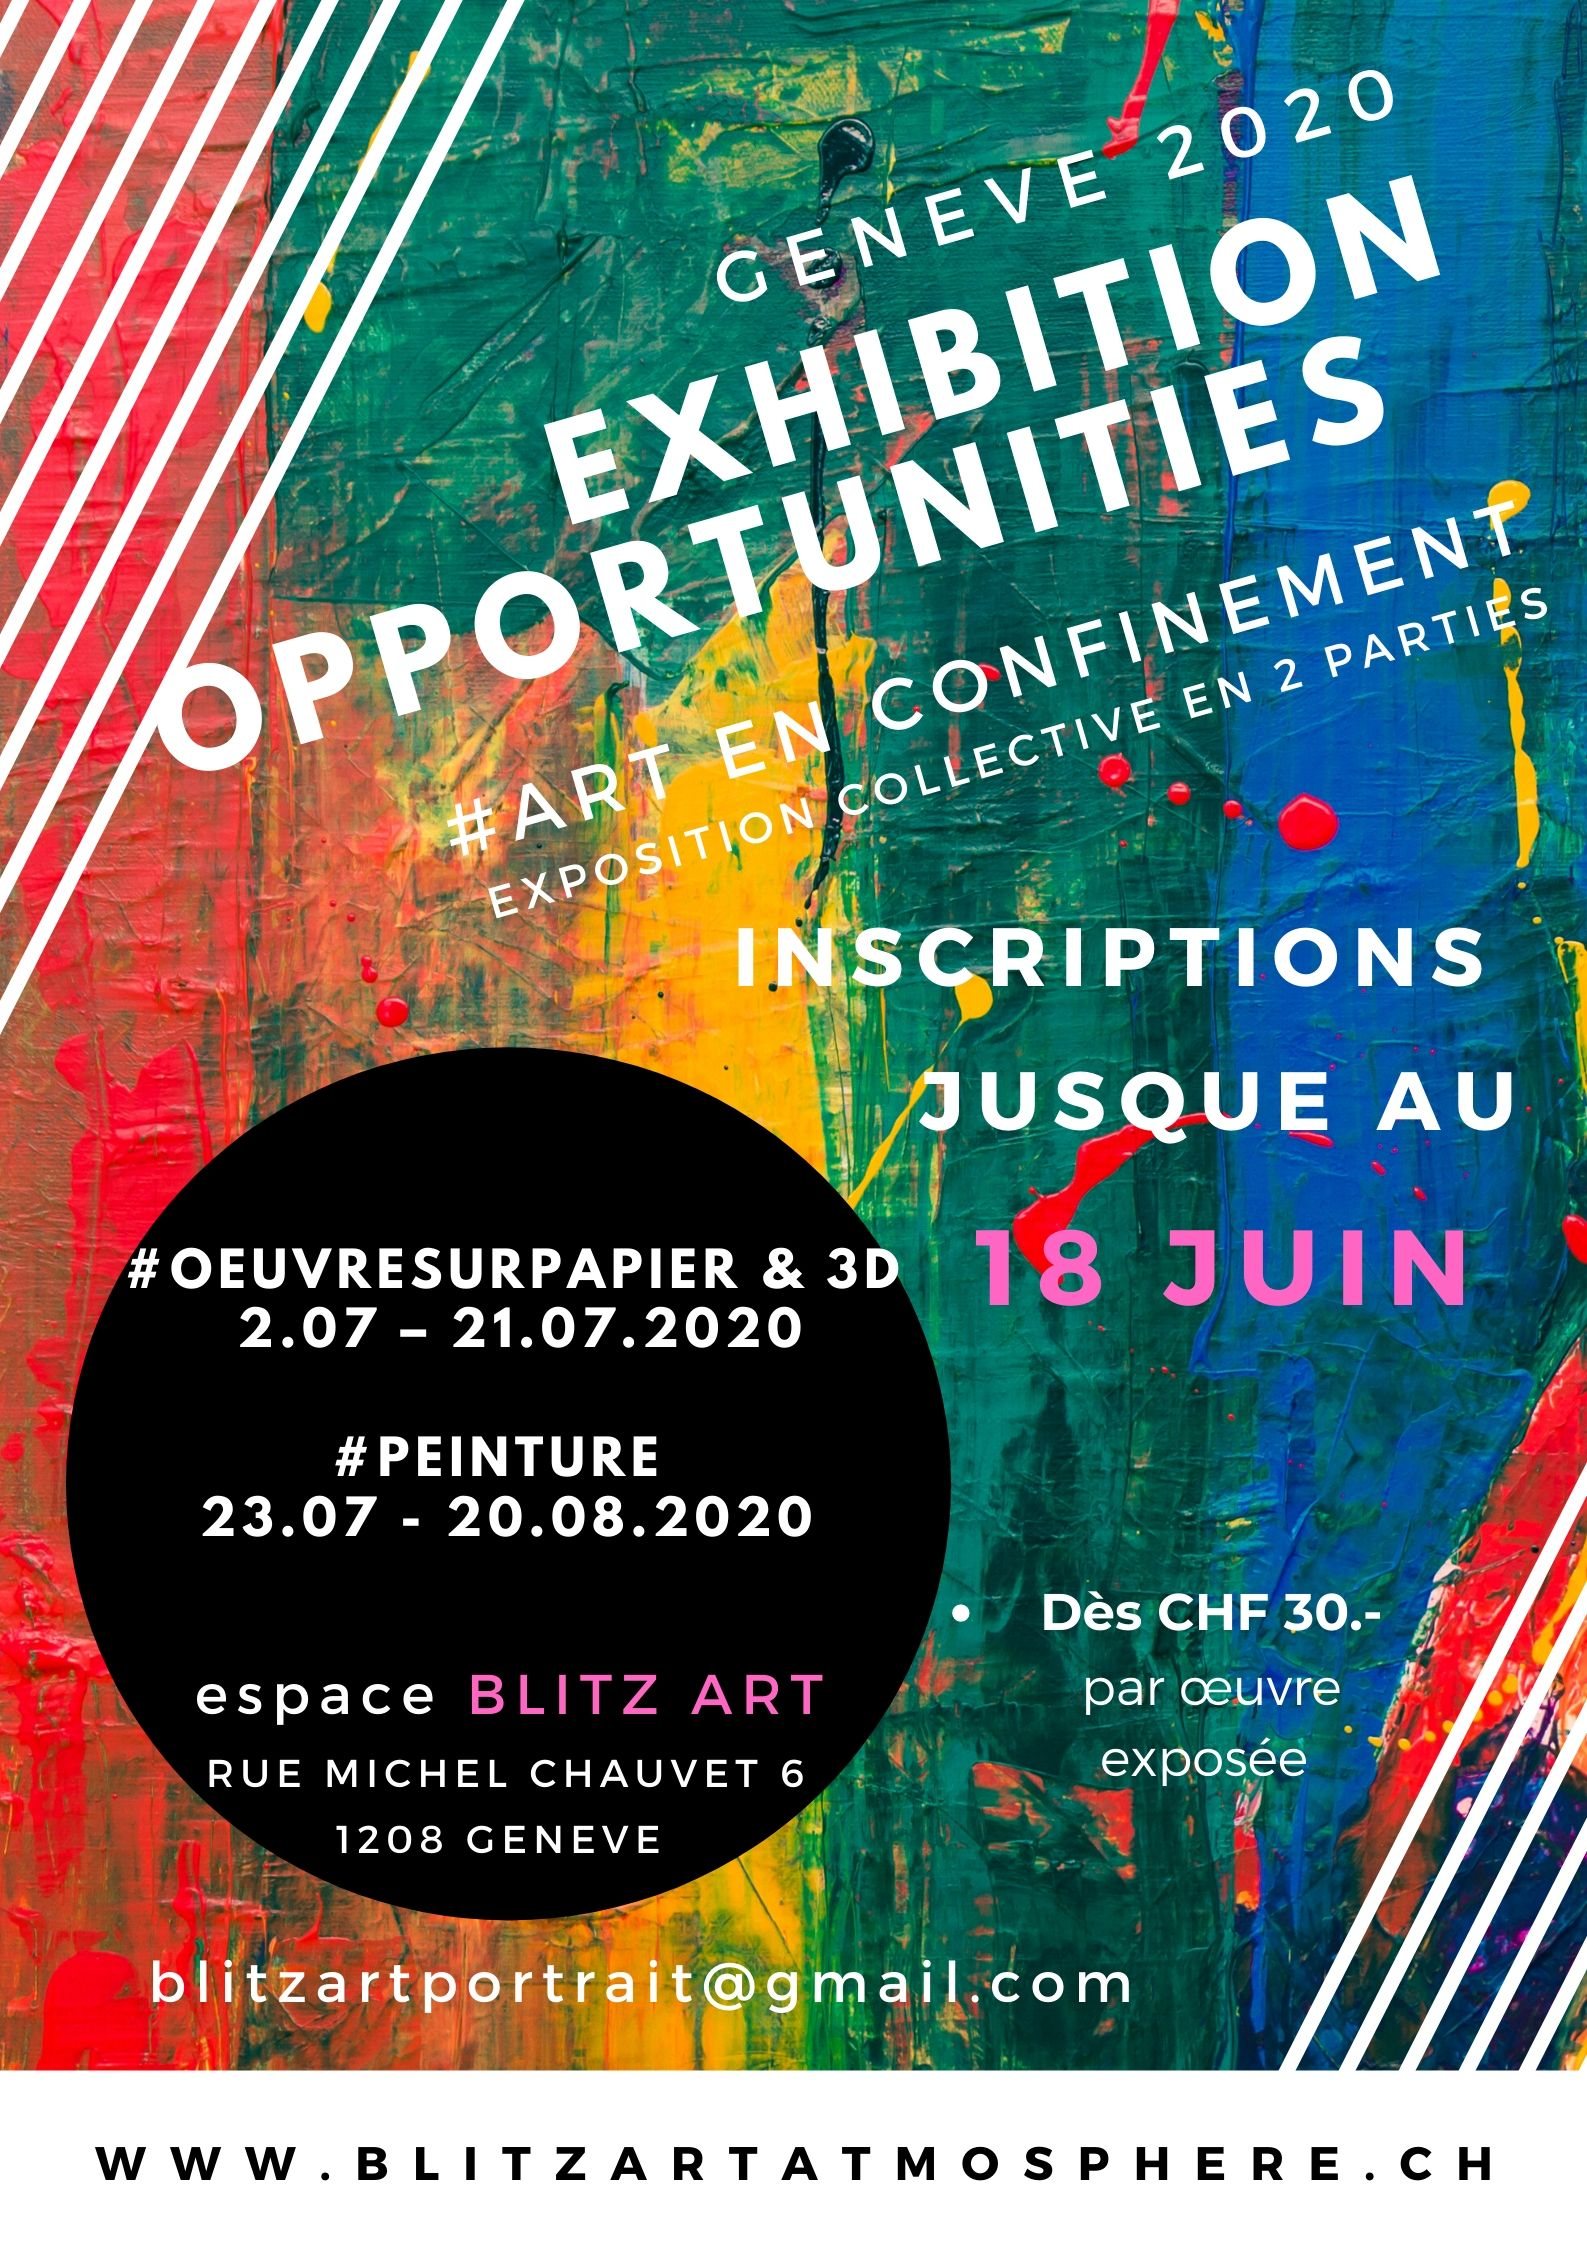 EXHIBITION OPPORTUNITIES - GENEVE 2020